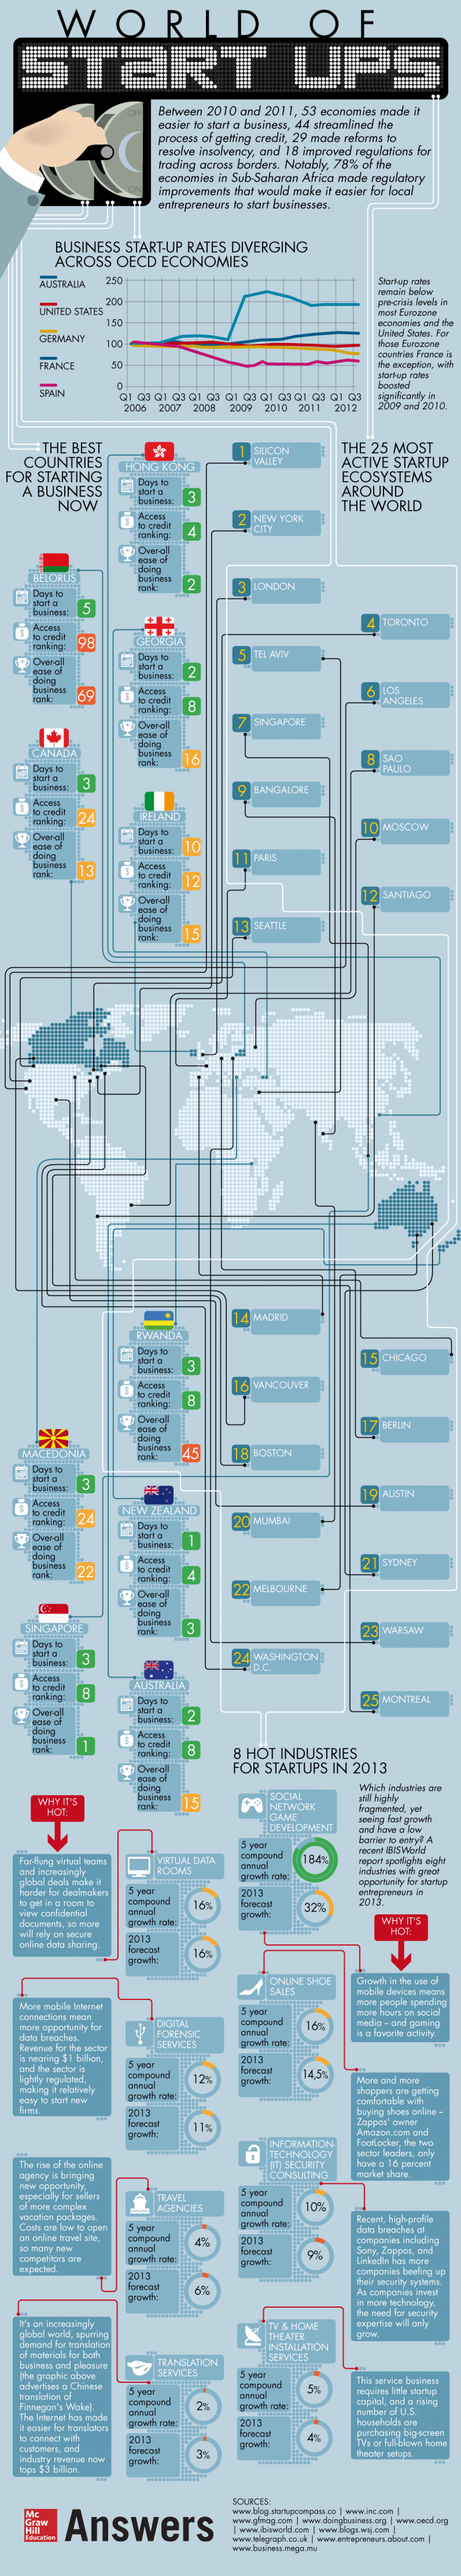 The World of Start Ups Infographic